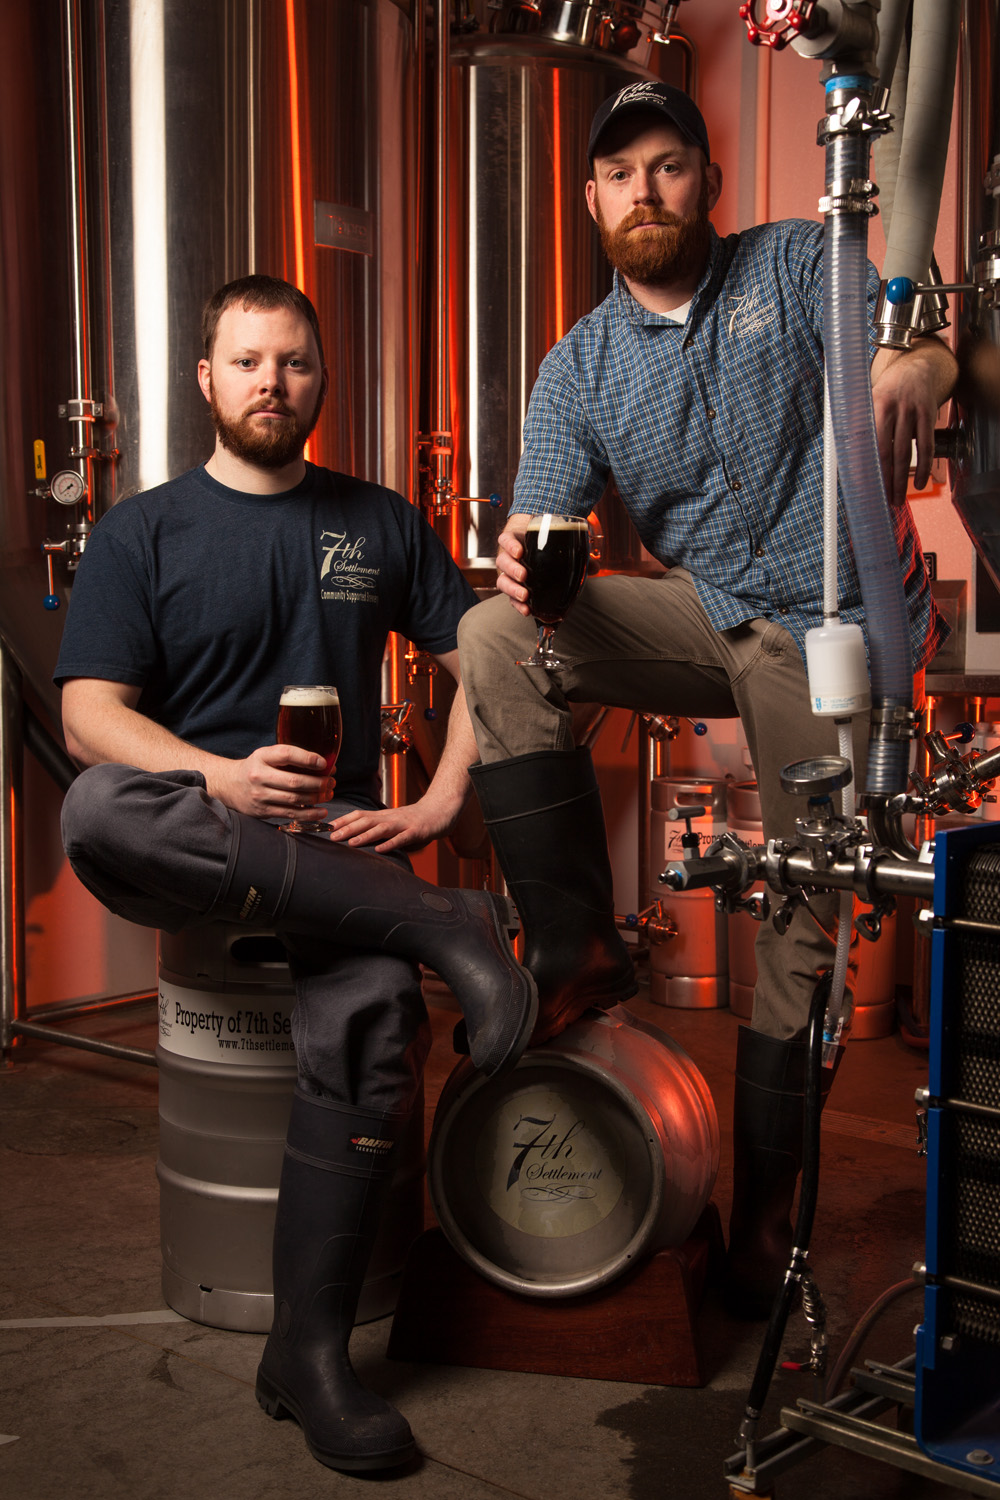 Nate Sephton and Josh Henry, Brewers at 7th Settlement Dover, NH Established in 2013